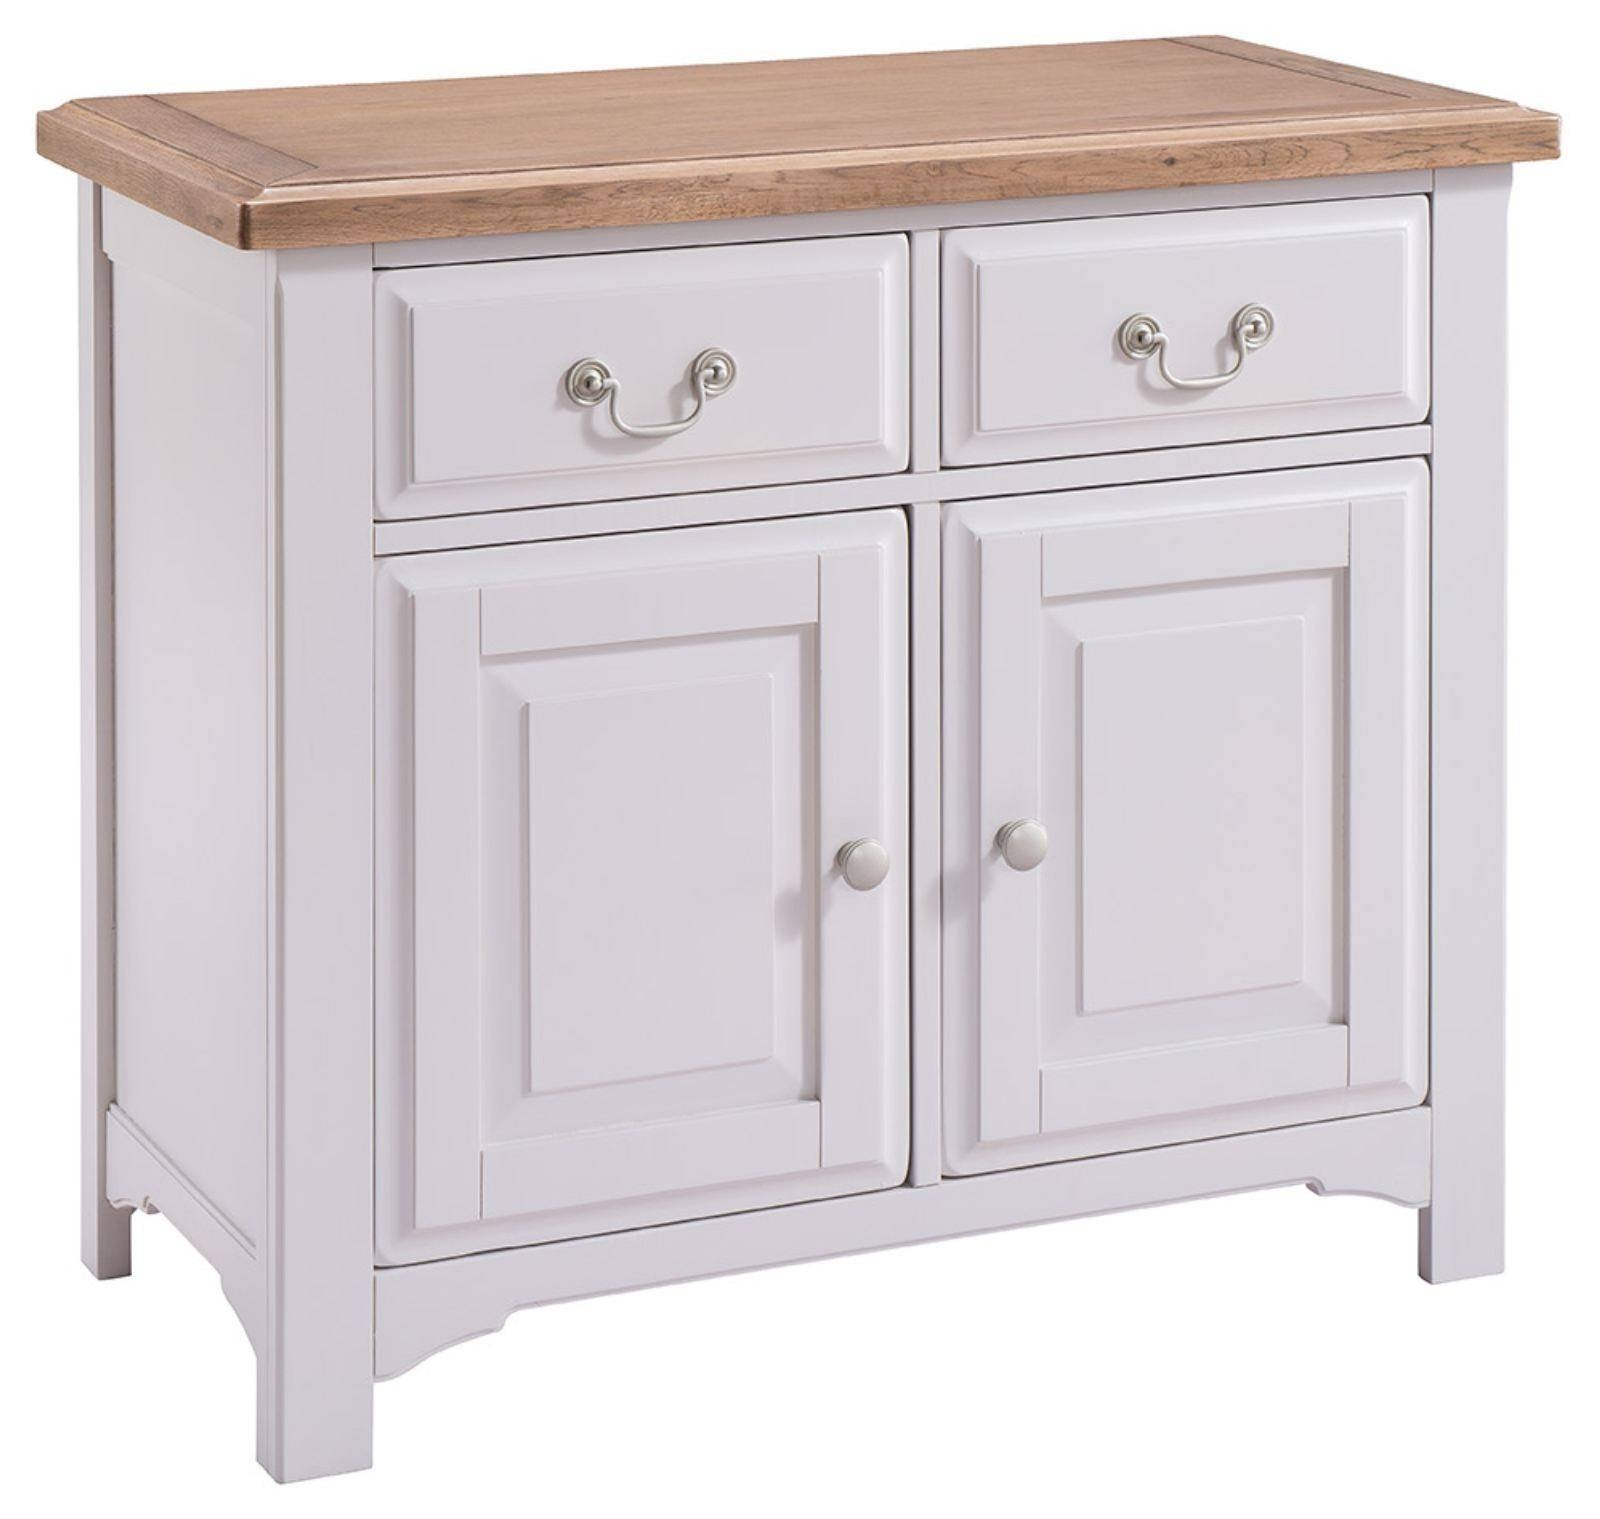 Hutch® – Buxton Light Grey Painted Small Sideboard With Regard To Small Sideboards With Drawers (View 9 of 30)